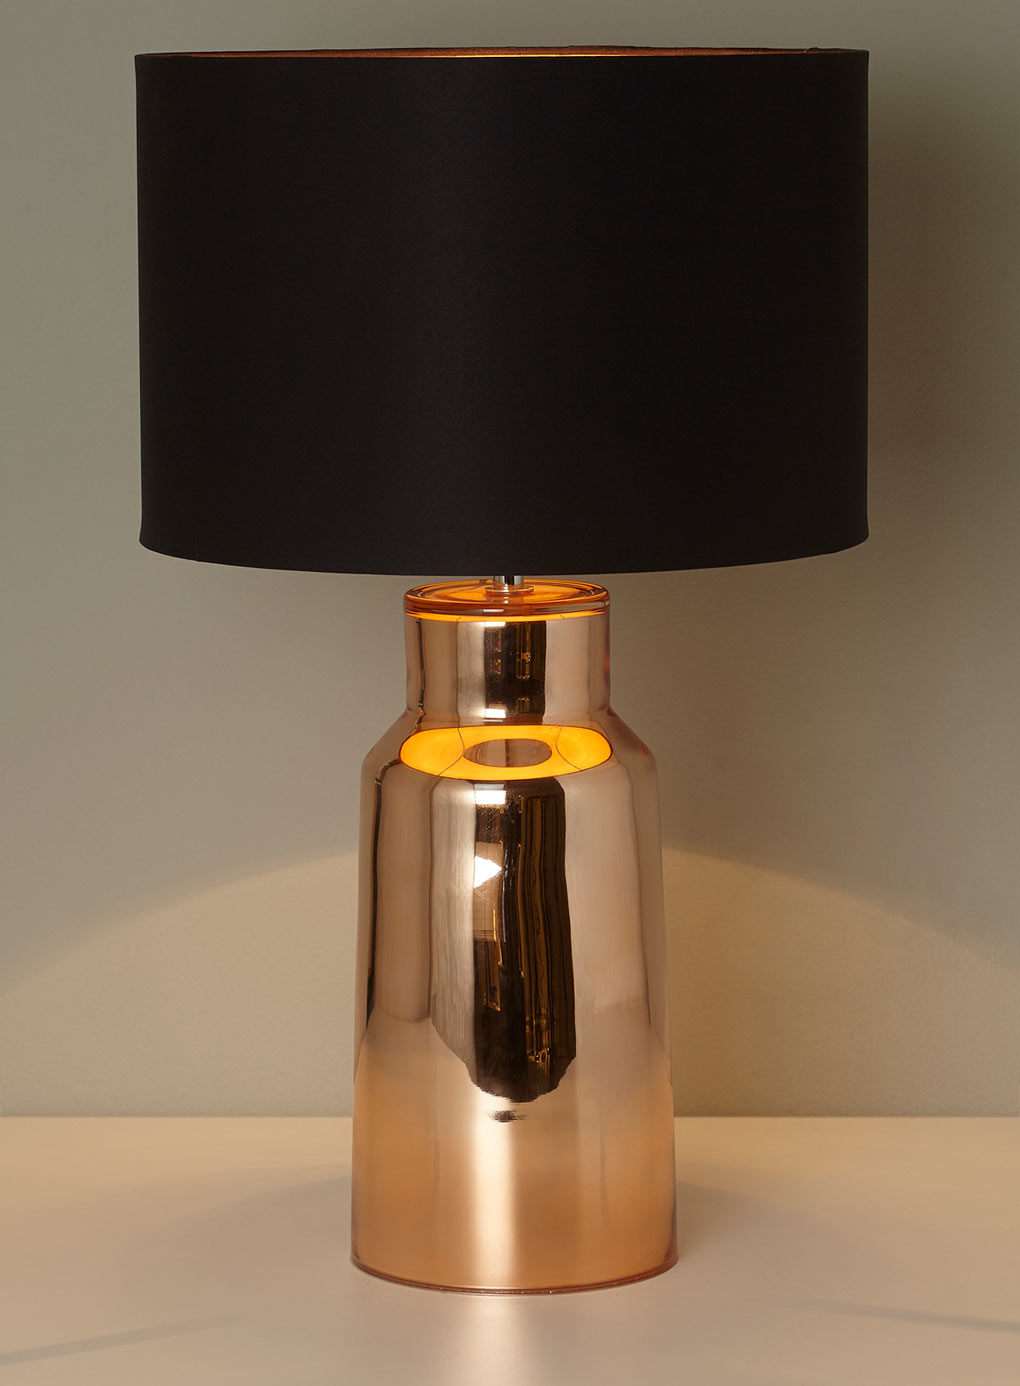 copper-table-lamp-photo-11